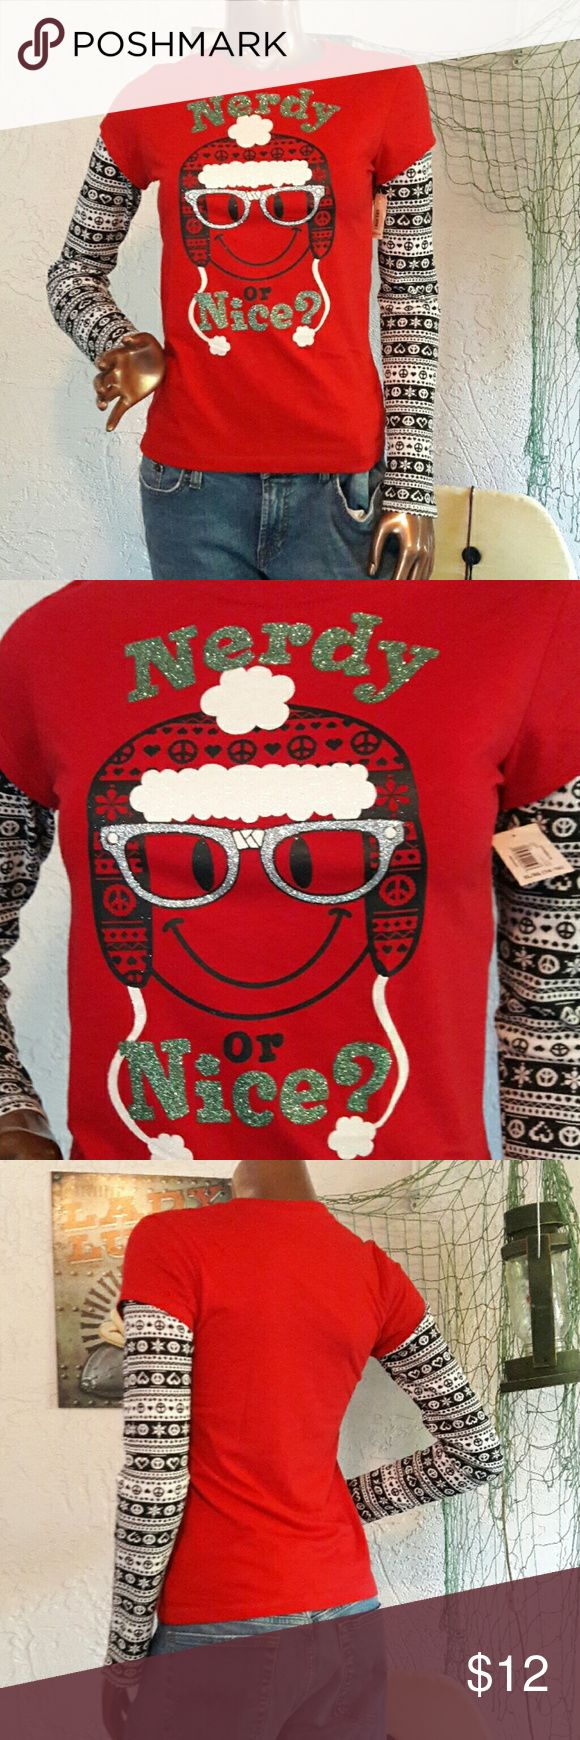 NWT Holiday Time Nerdy or Nice Tshirt Brand Holiday Time Size XL Juniors runs small like a medium  Red Tshirt with Extended Sleeves in Black& White Pattern. Graphic Tshirt with Nerdy or Nice glitter accents. New with Tags Bundles available with discounts Holiday Time Tops Tees - Long Sleeve